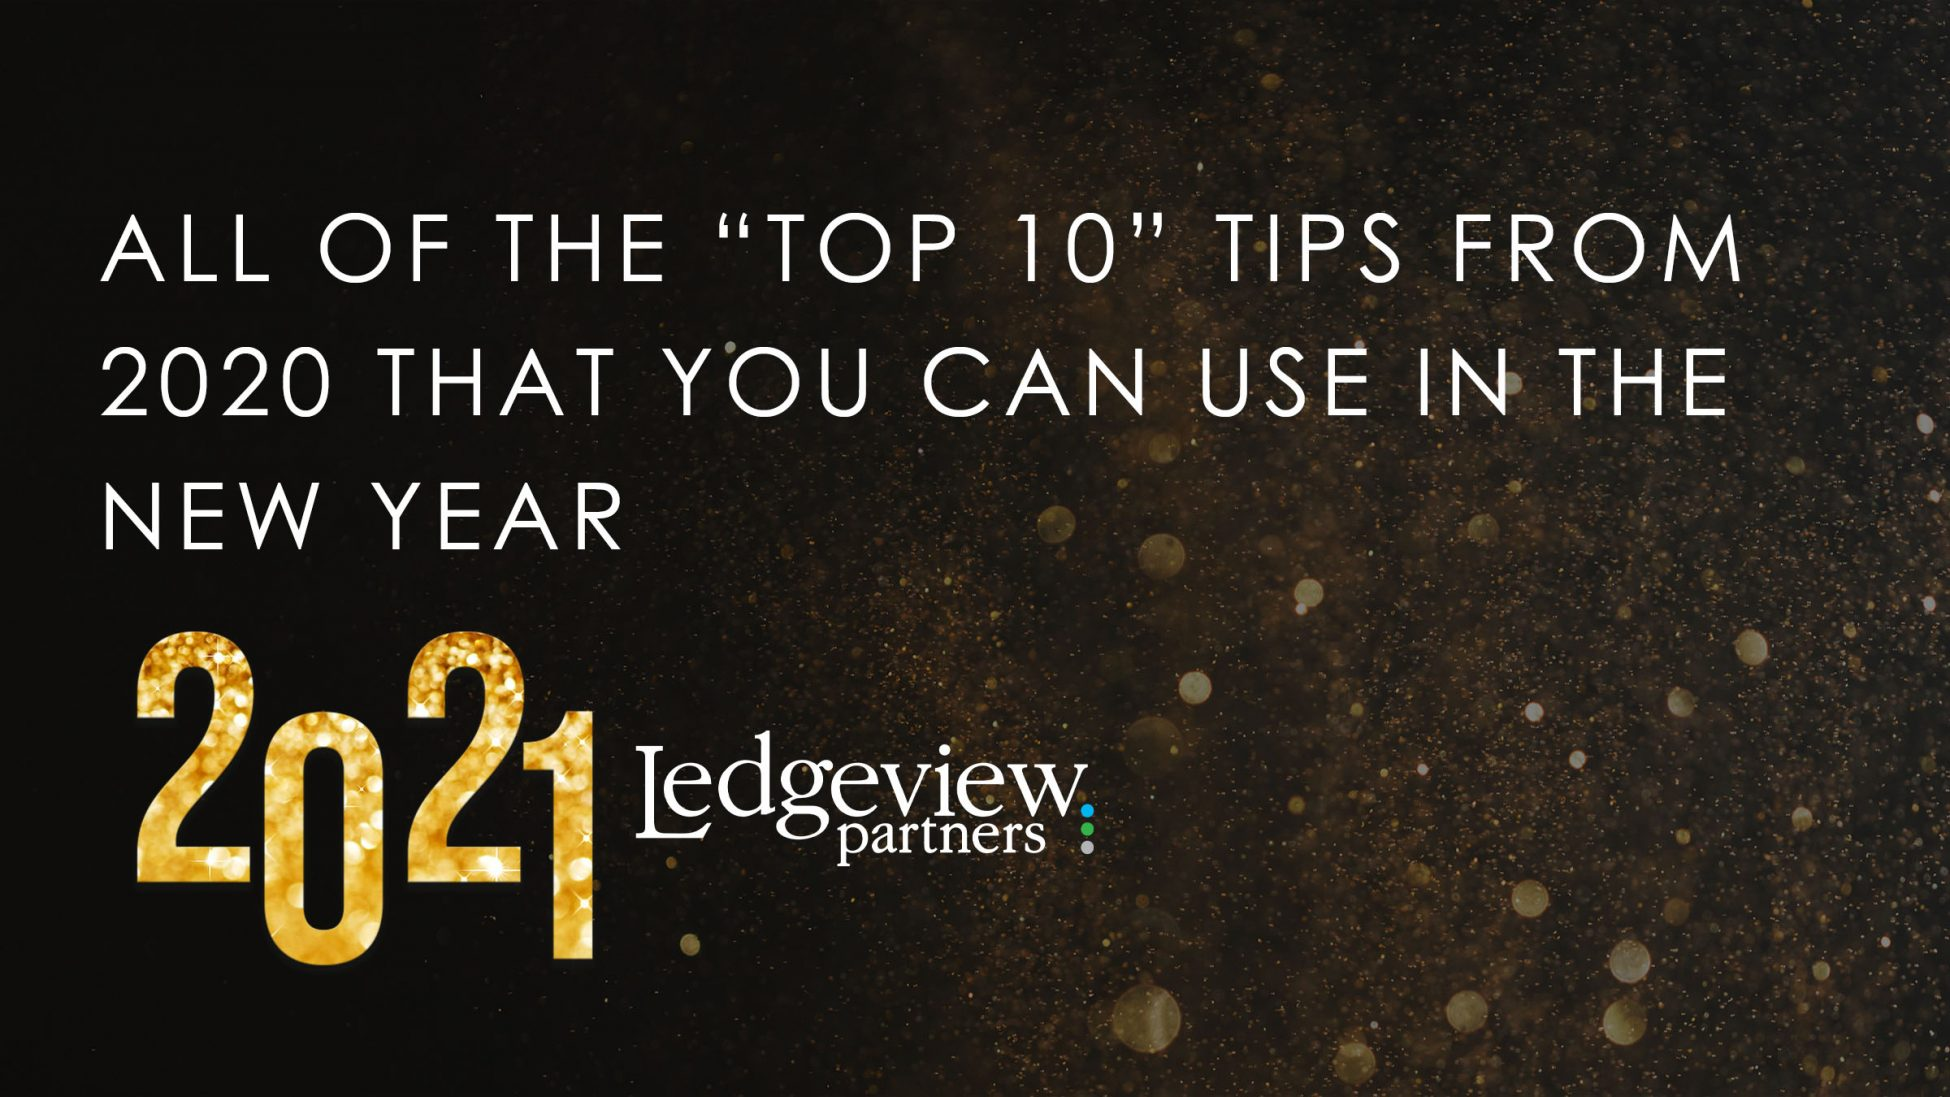 All of the 'Top 10' Tips from 2020 That You Can Use in the New Year